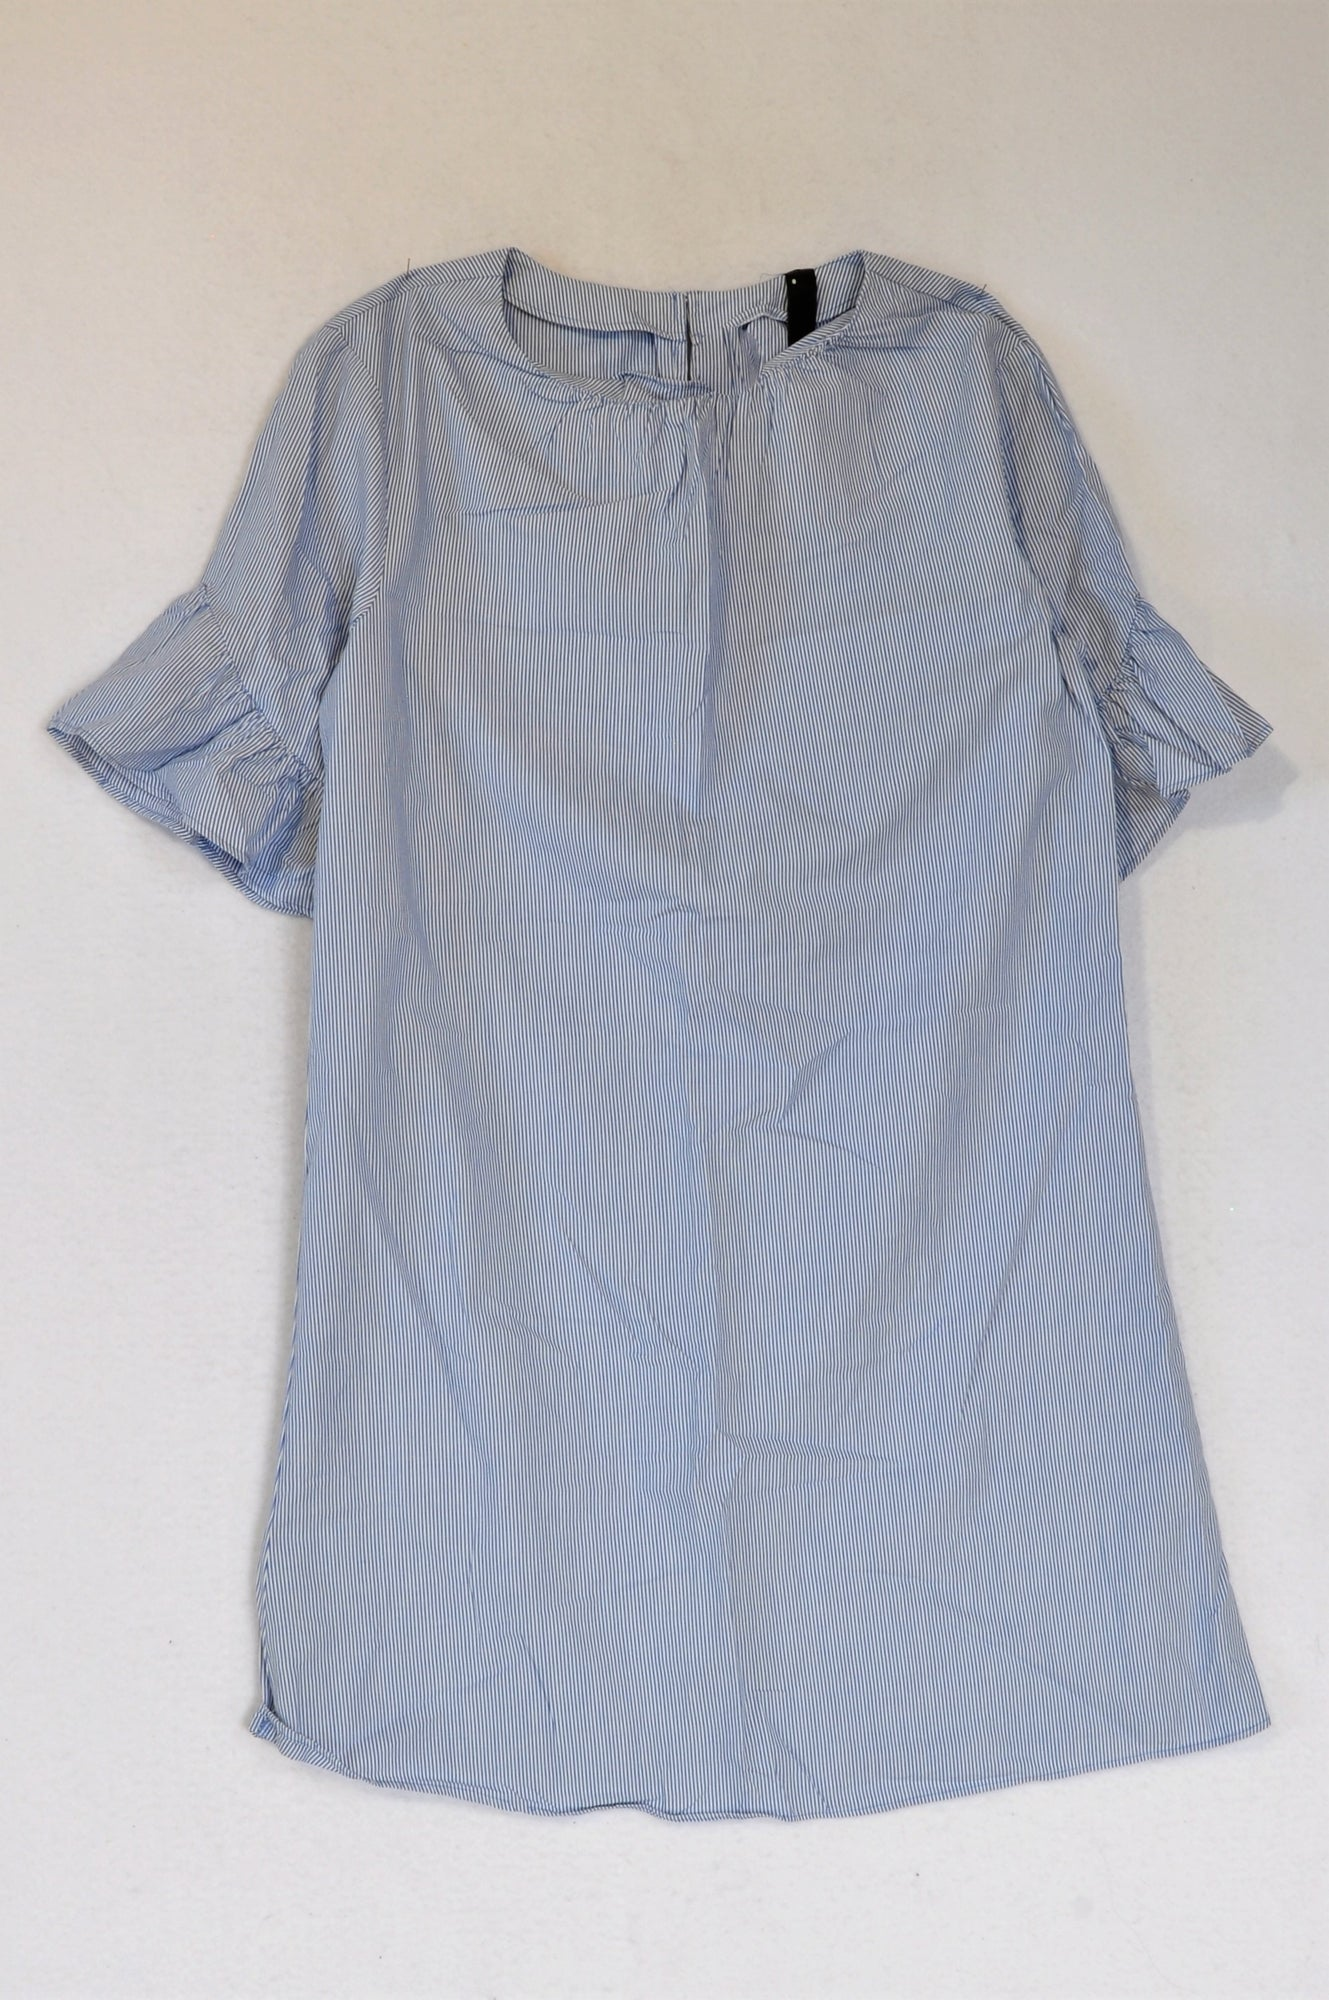 Woolworths Blue Pinstripe Frill Sleeve Shift Dress Women Size 8